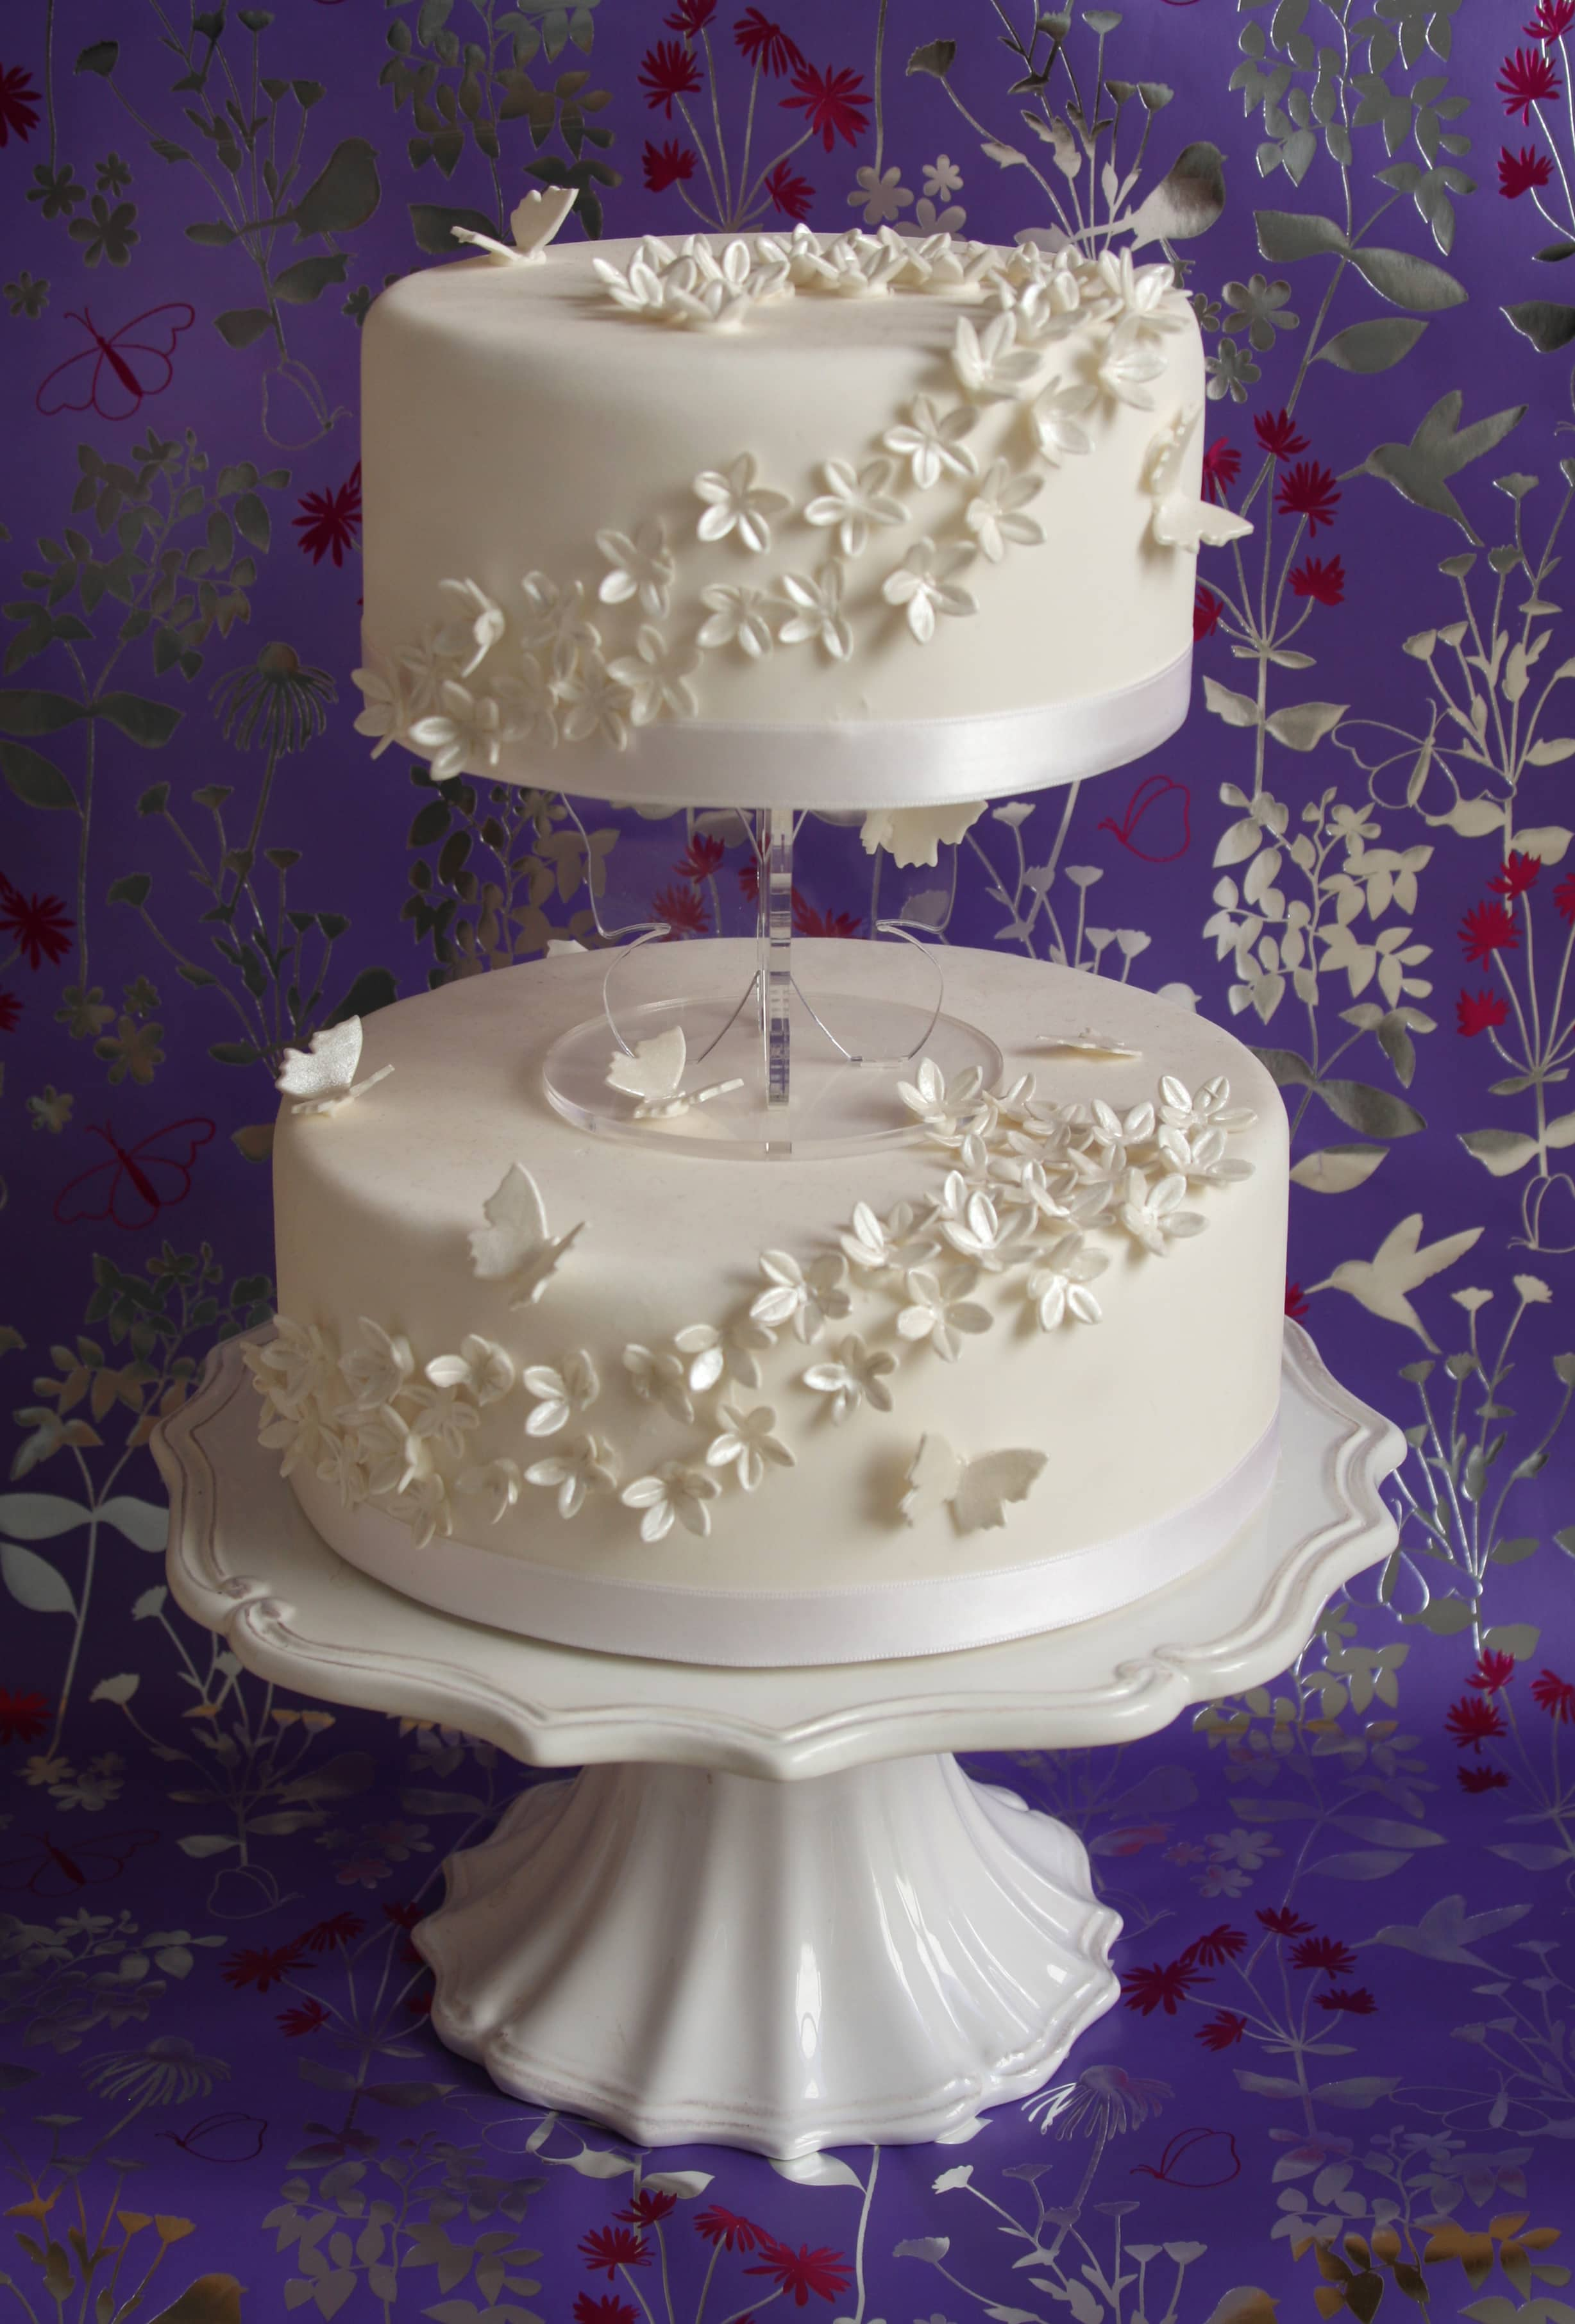 Trends 2012 Wedding Cakes Constance Hotels And ResortsConstance Hotels And